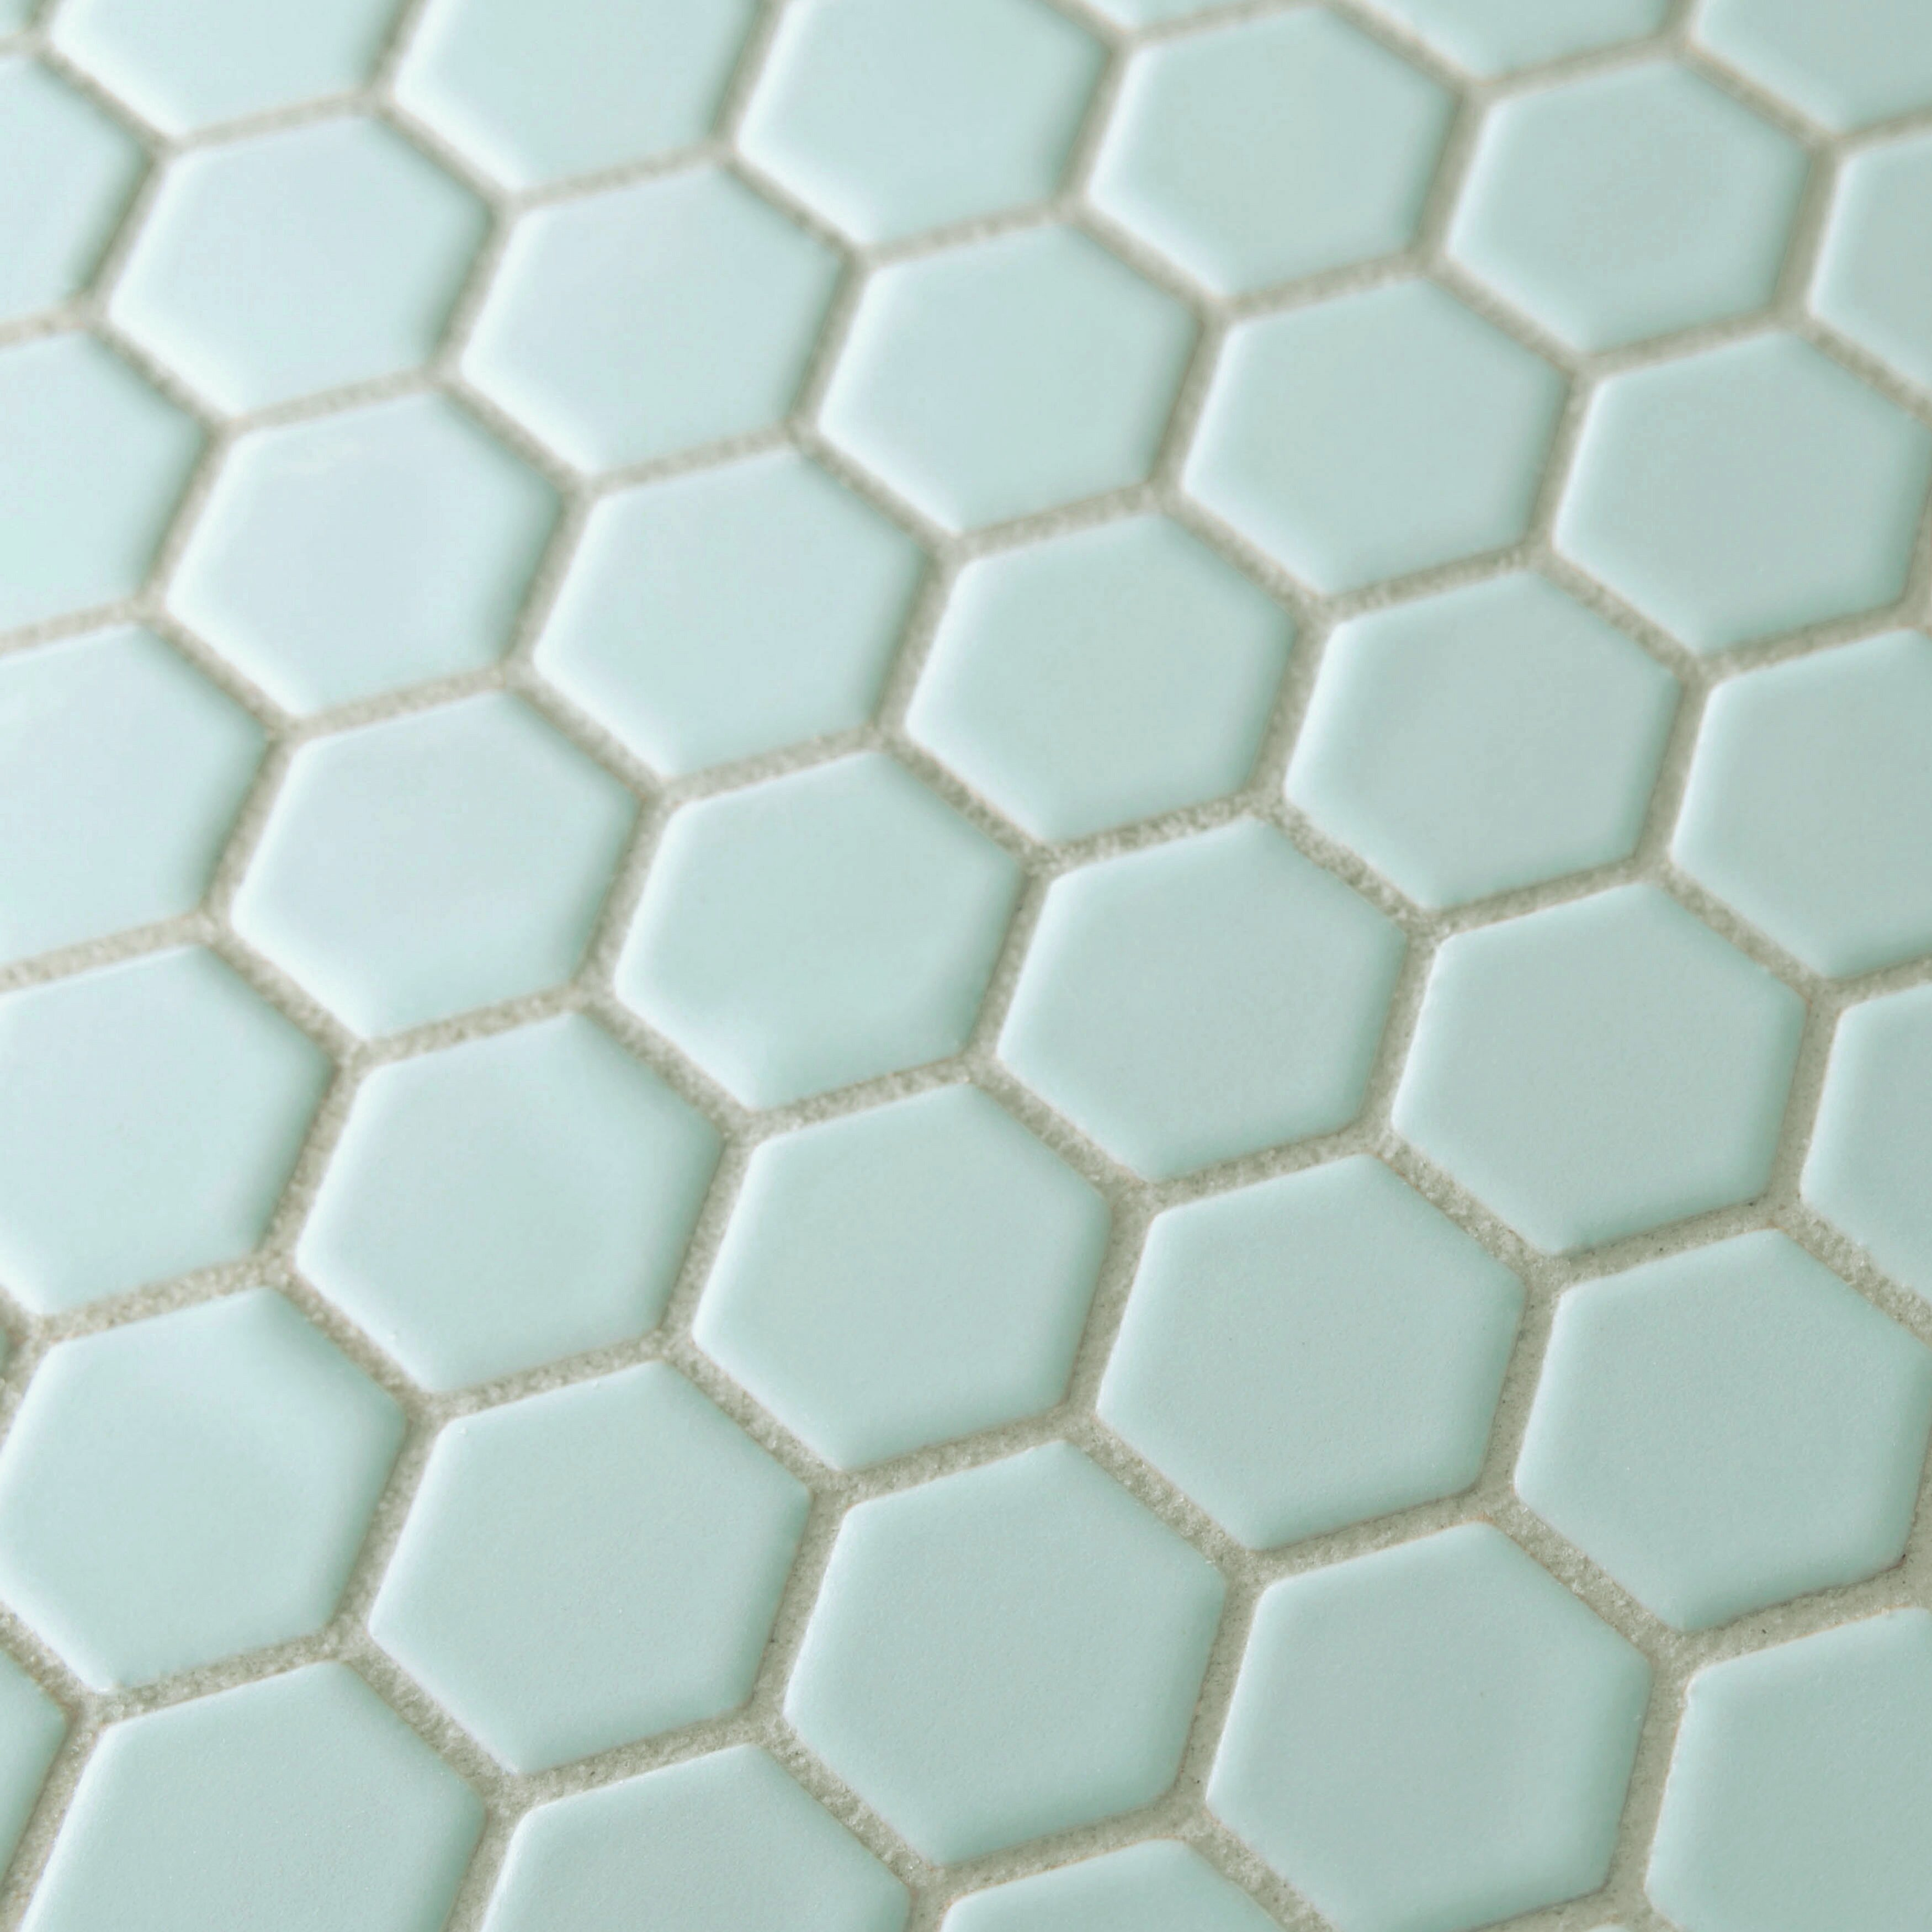 "EliteTile Retro 0.875"" x 0.875"" Hex Porcelain Mosaic Tile ..."